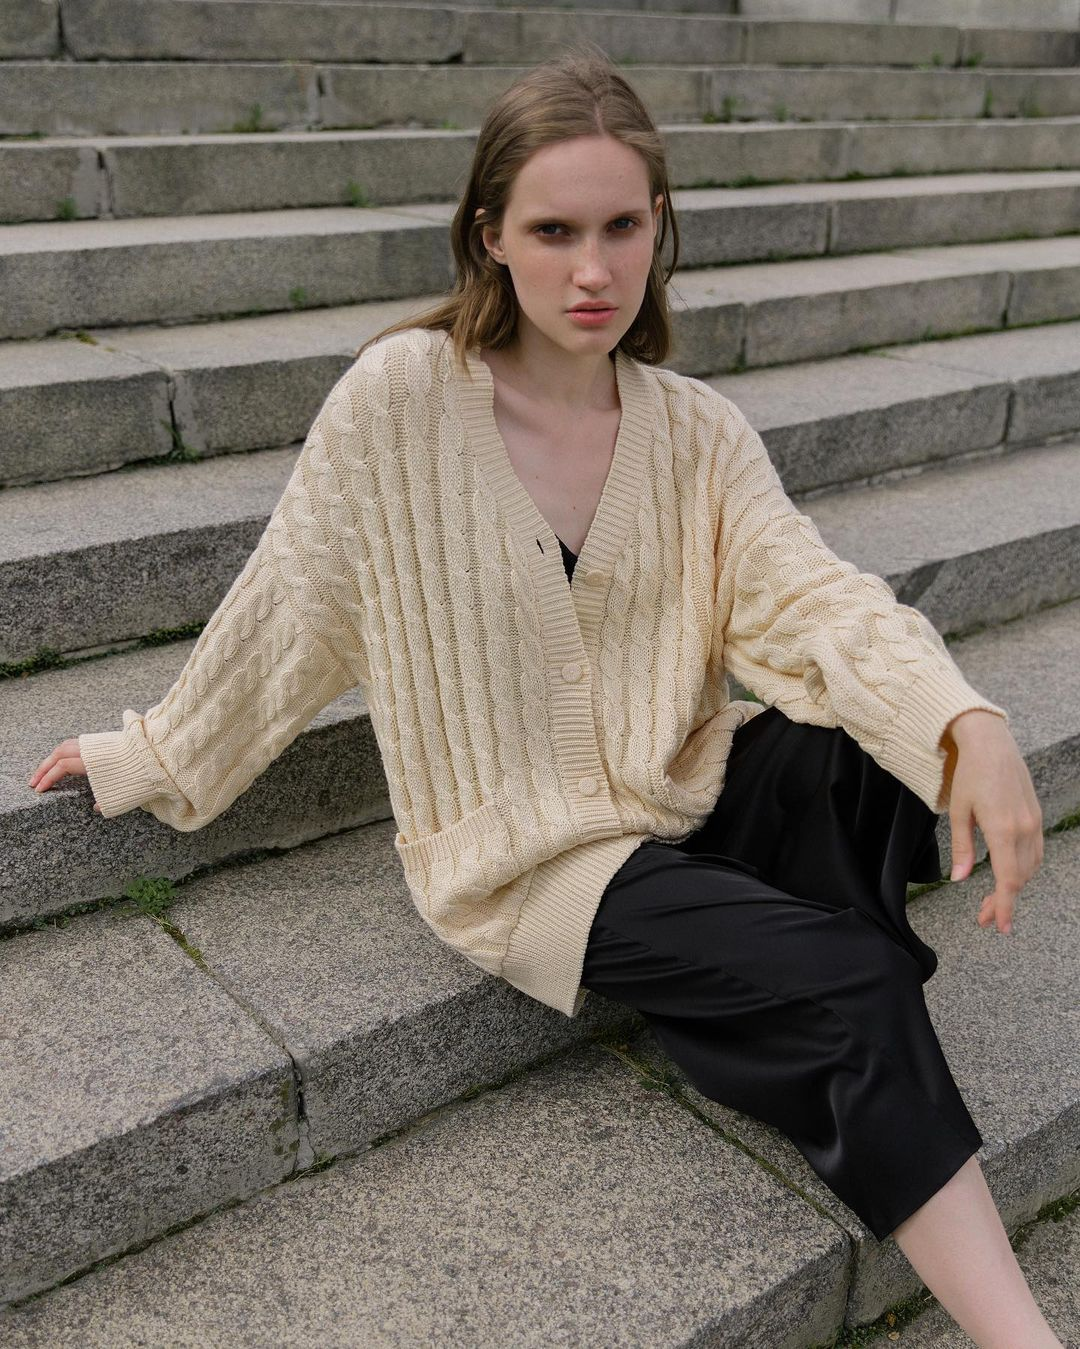 knitelwear 241565111 230199872453903 8285722845696449877 n Guide to the Perfect Academia Aesthetic: Fashion through Arts & Education